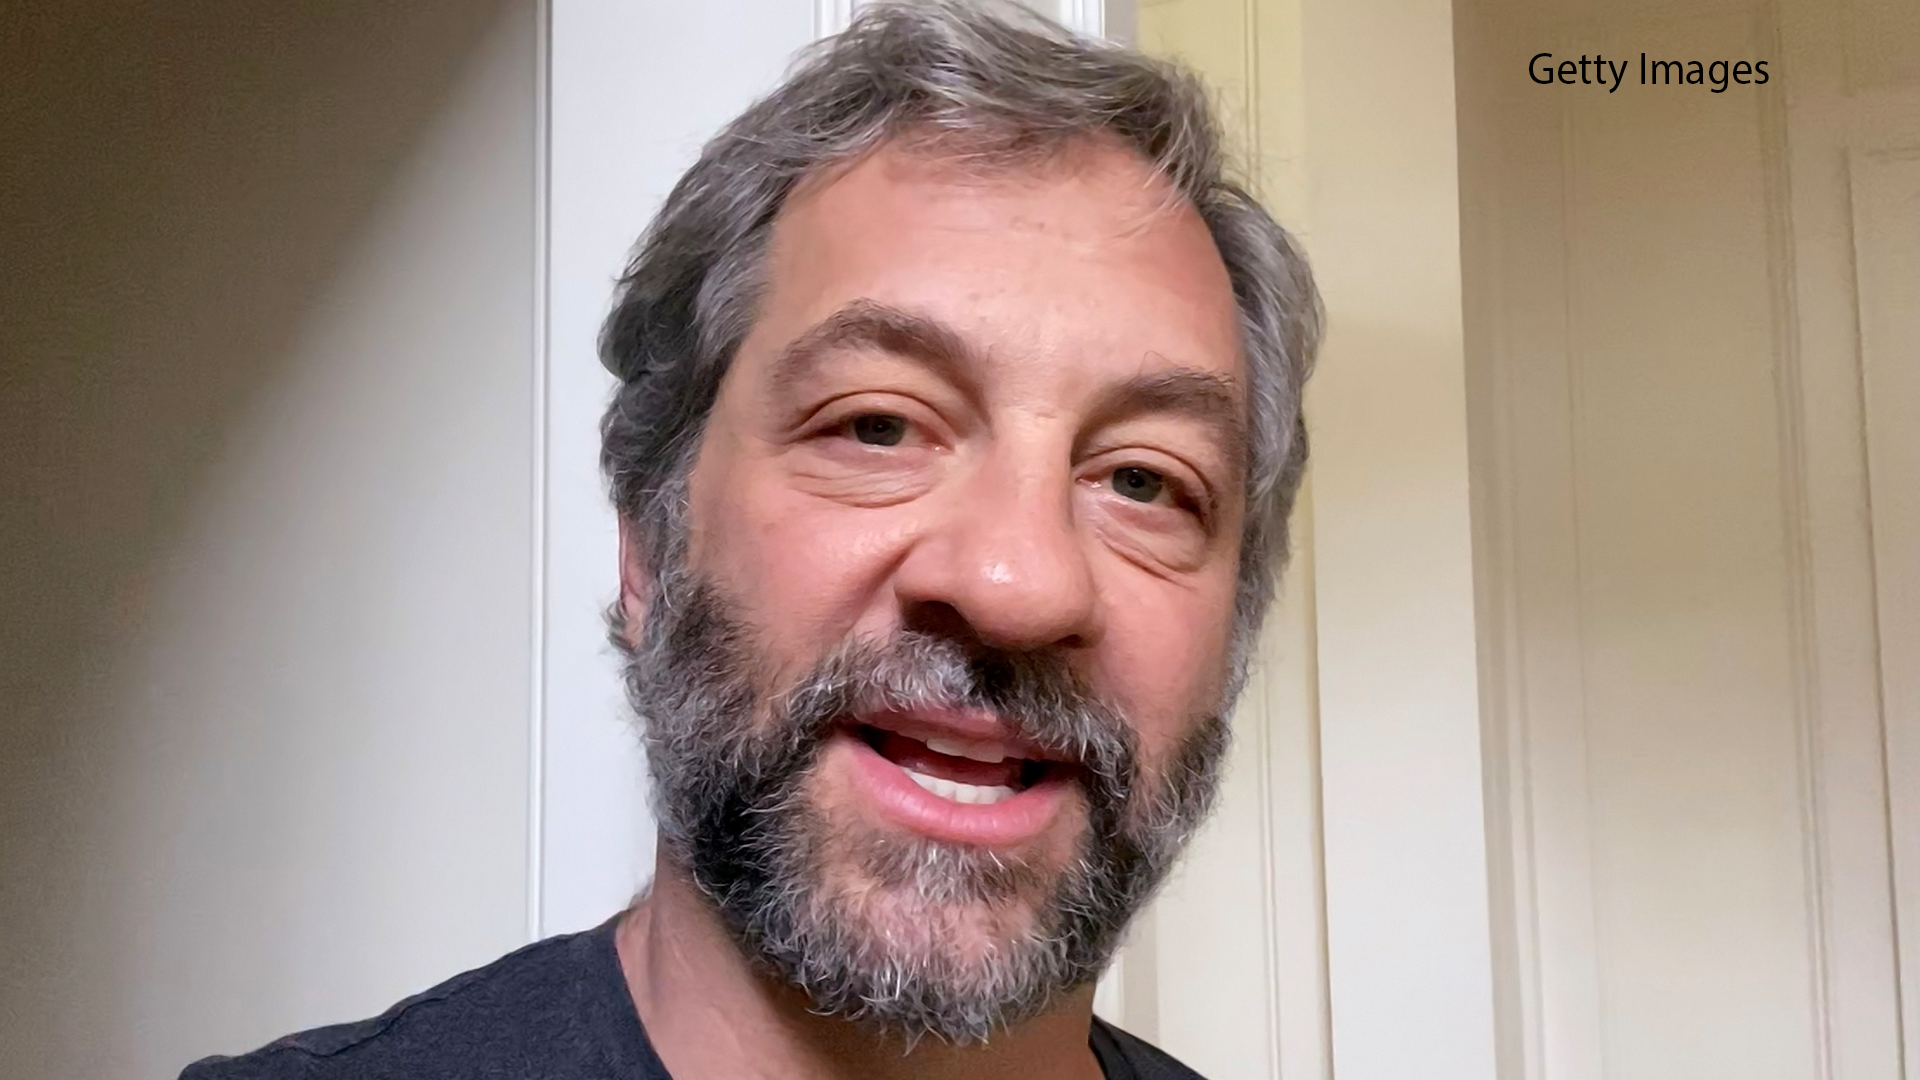 Judd Apatow on King Of Staten Island